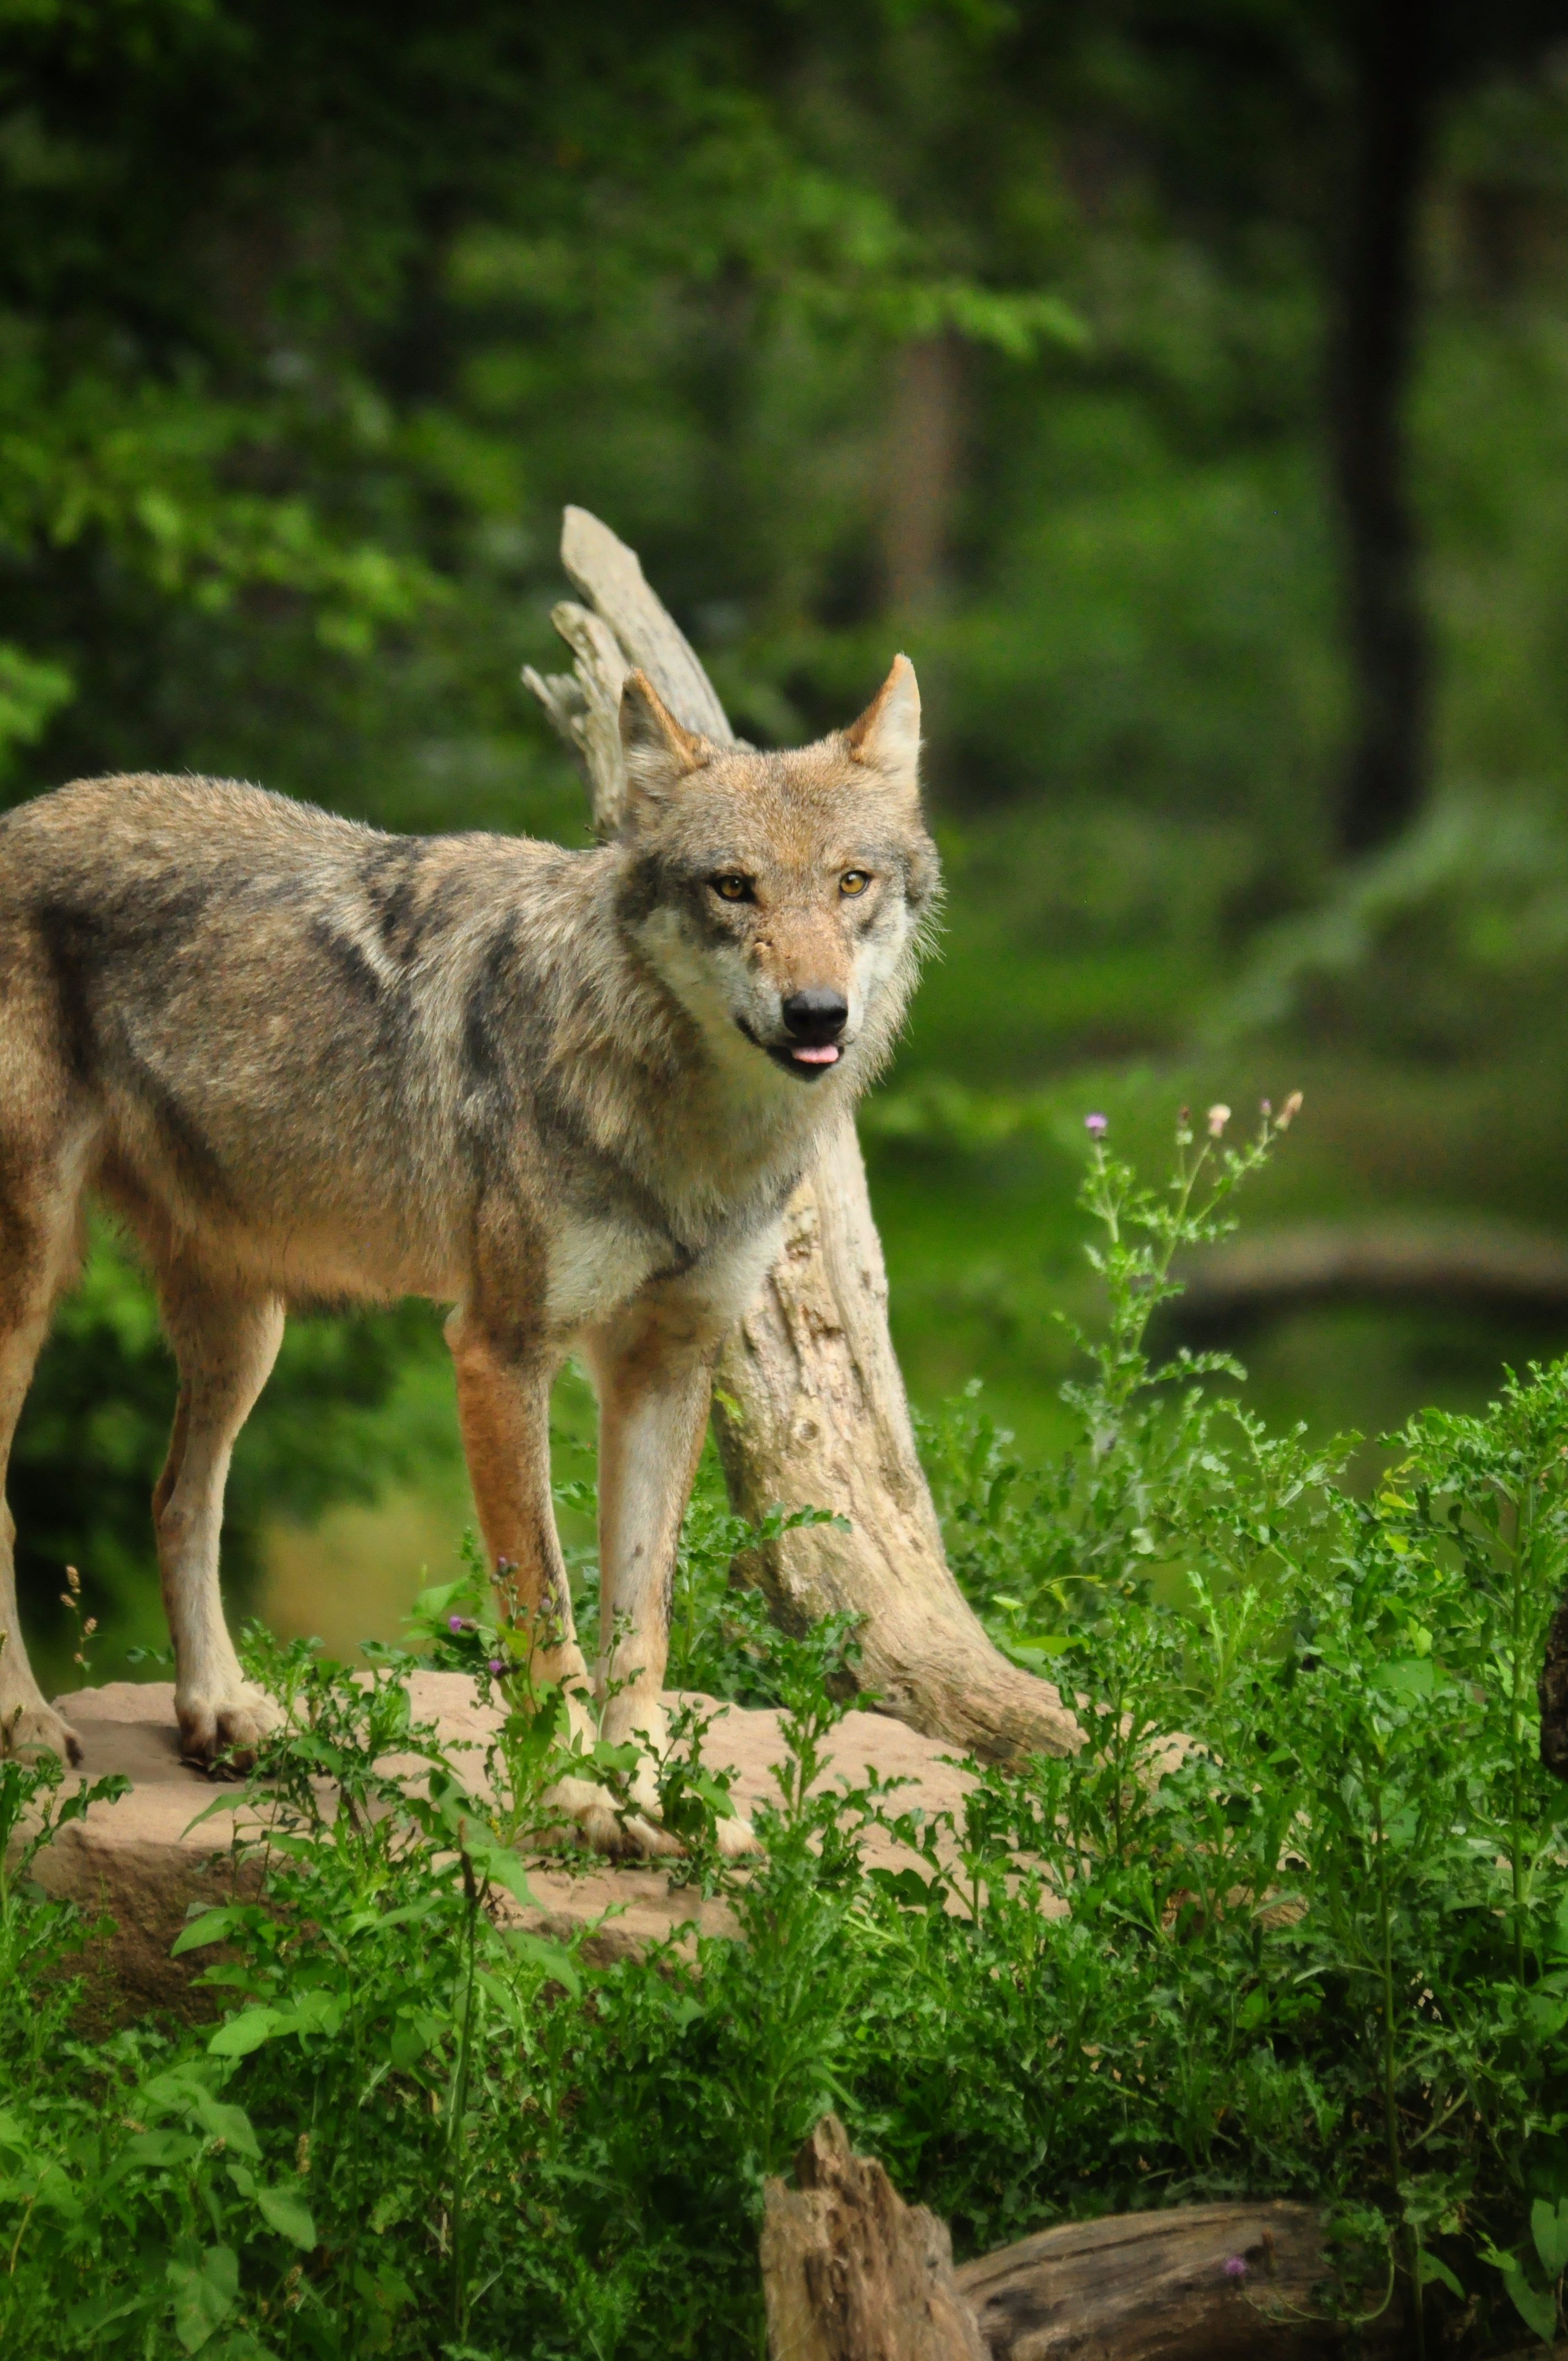 98211 download wallpaper Animals, Wolf, Funny, Protruding Tongue, Tongue Stuck Out, Predator screensavers and pictures for free